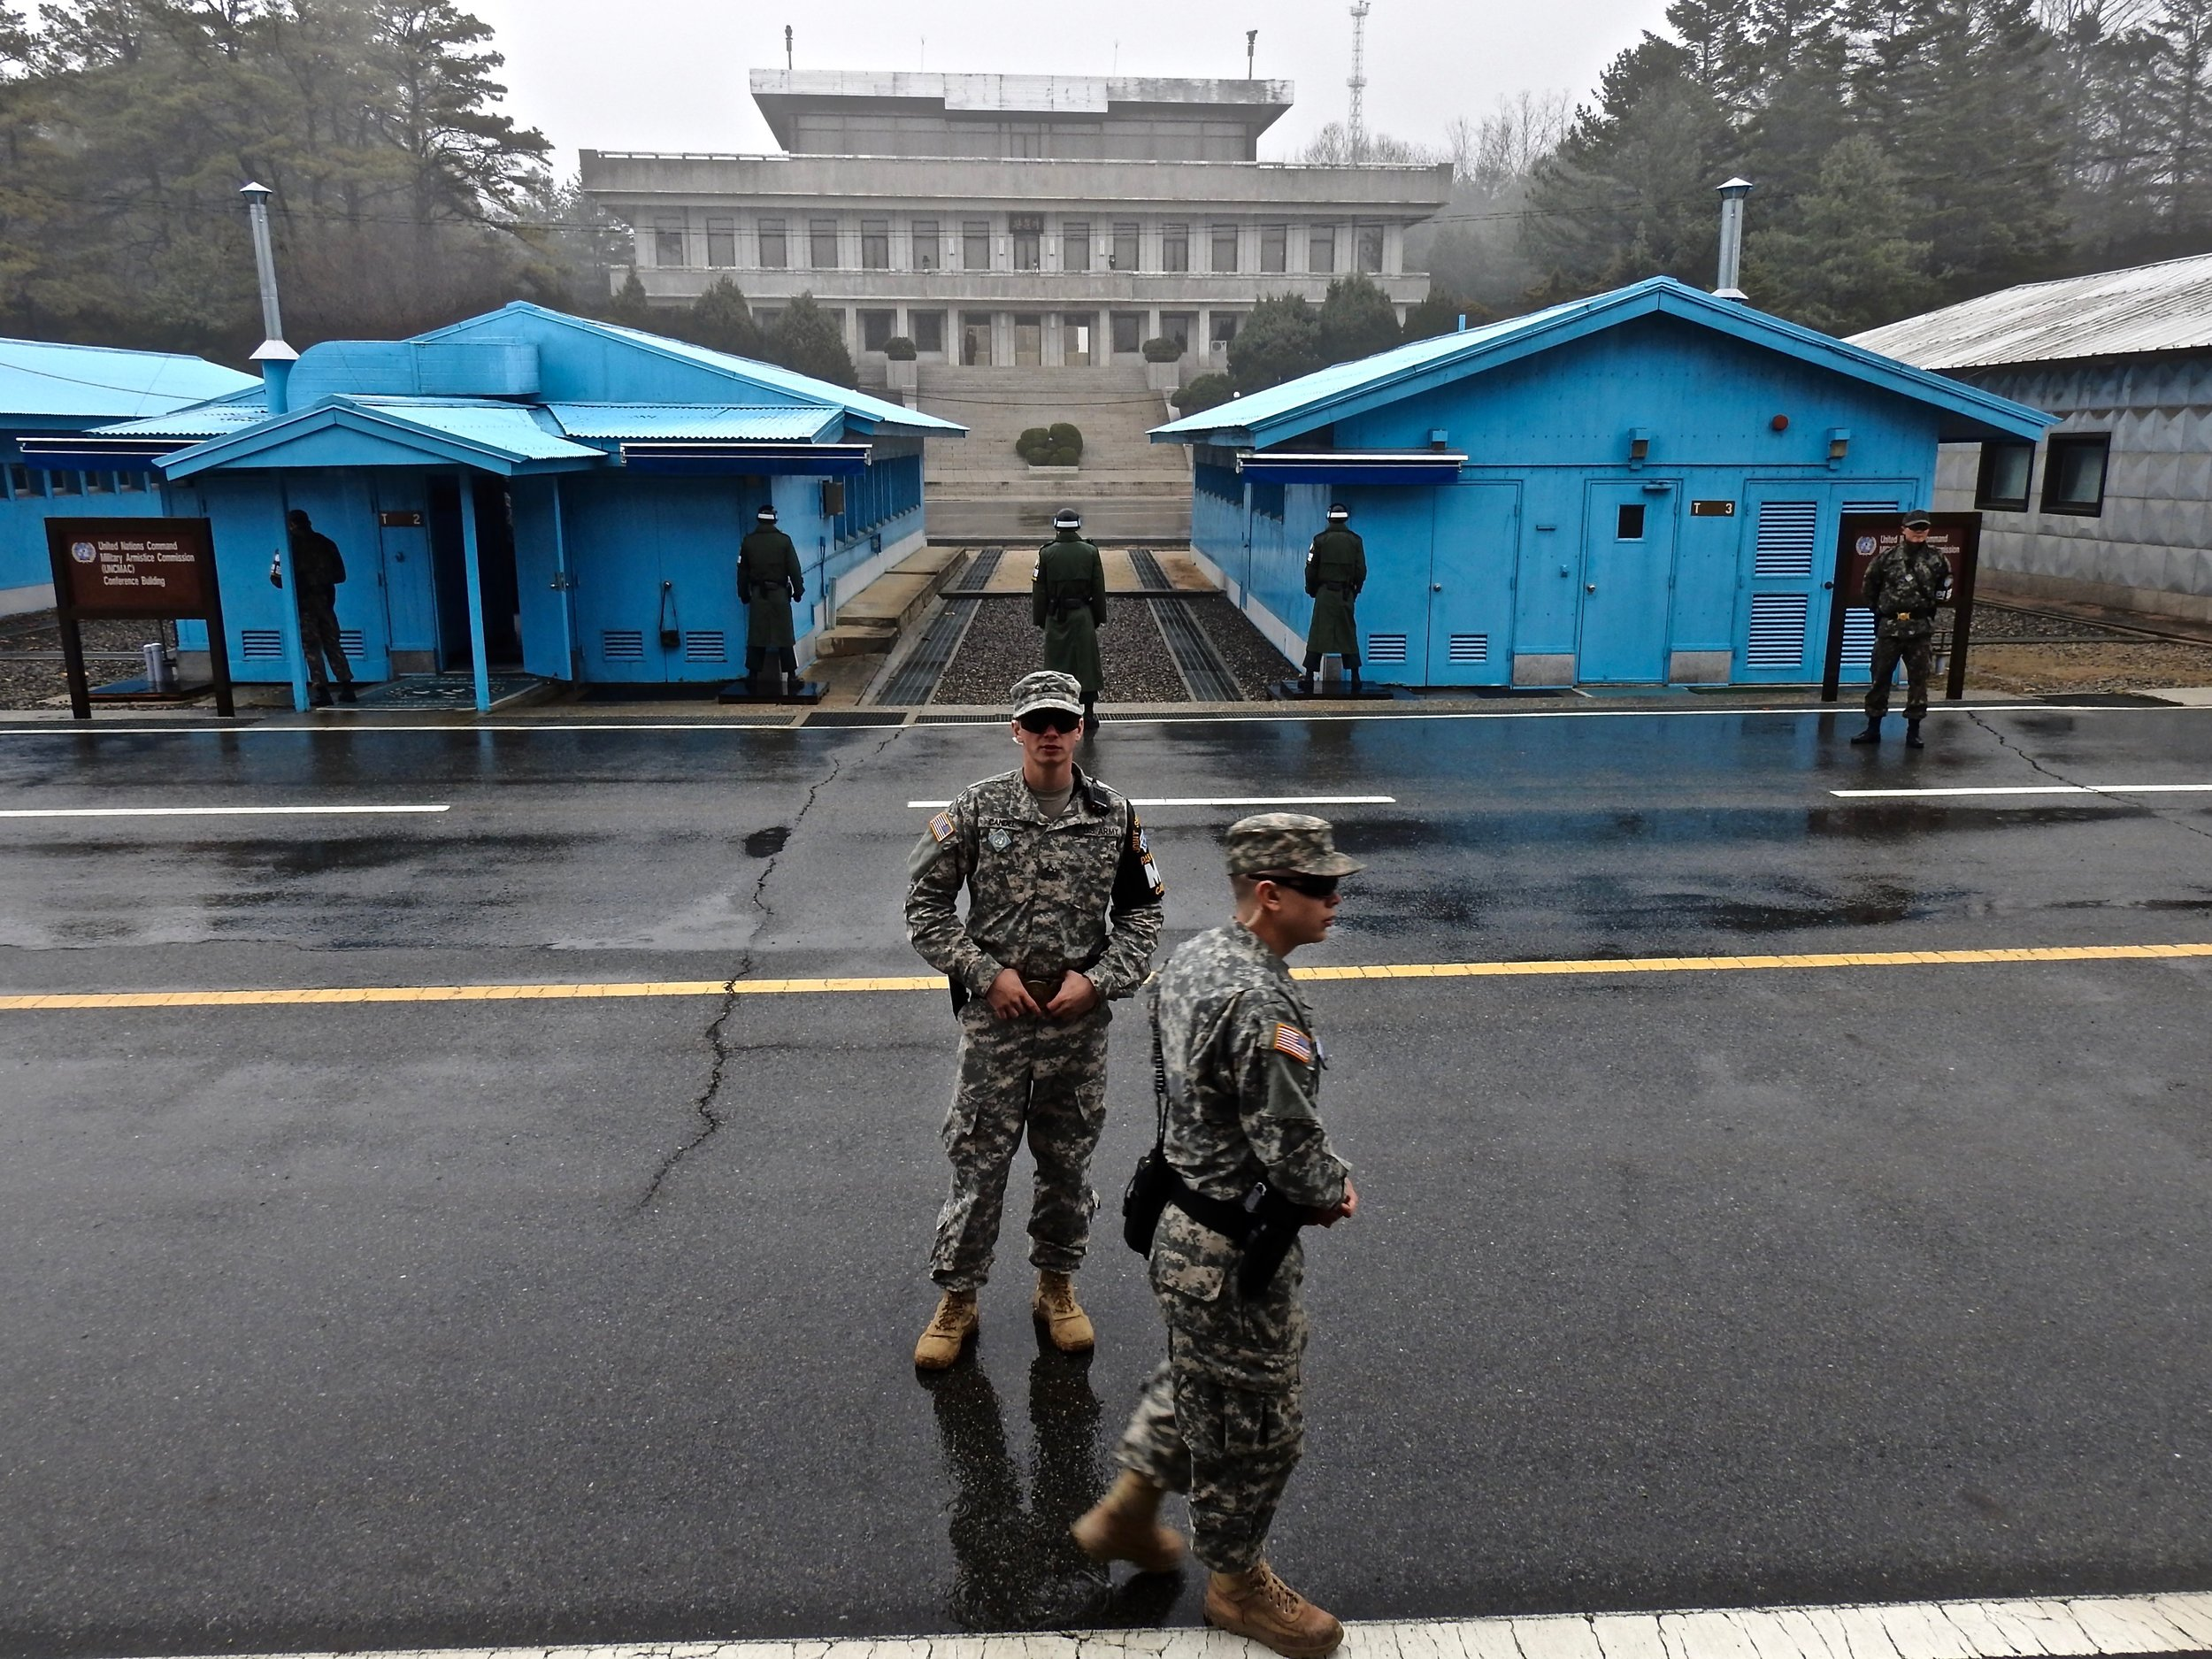 United States military personnel (front) and South Korean soldiers (behind) at the border between North and South Korea. (C) Remko Tanis